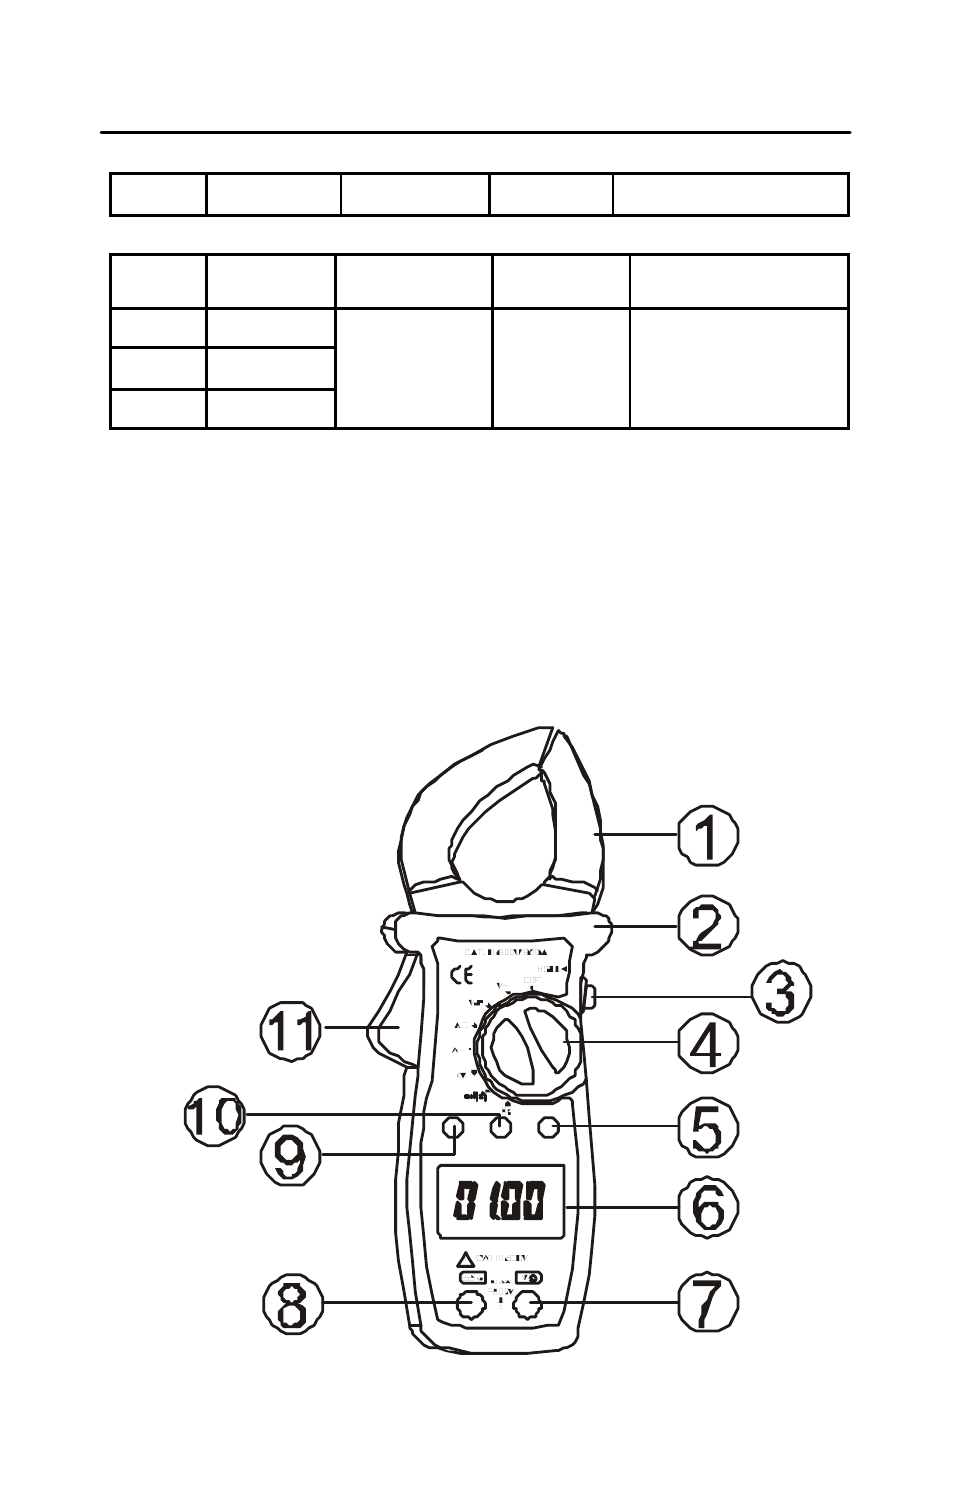 Instrument description (fig.1), 325 en-6, Frequency test